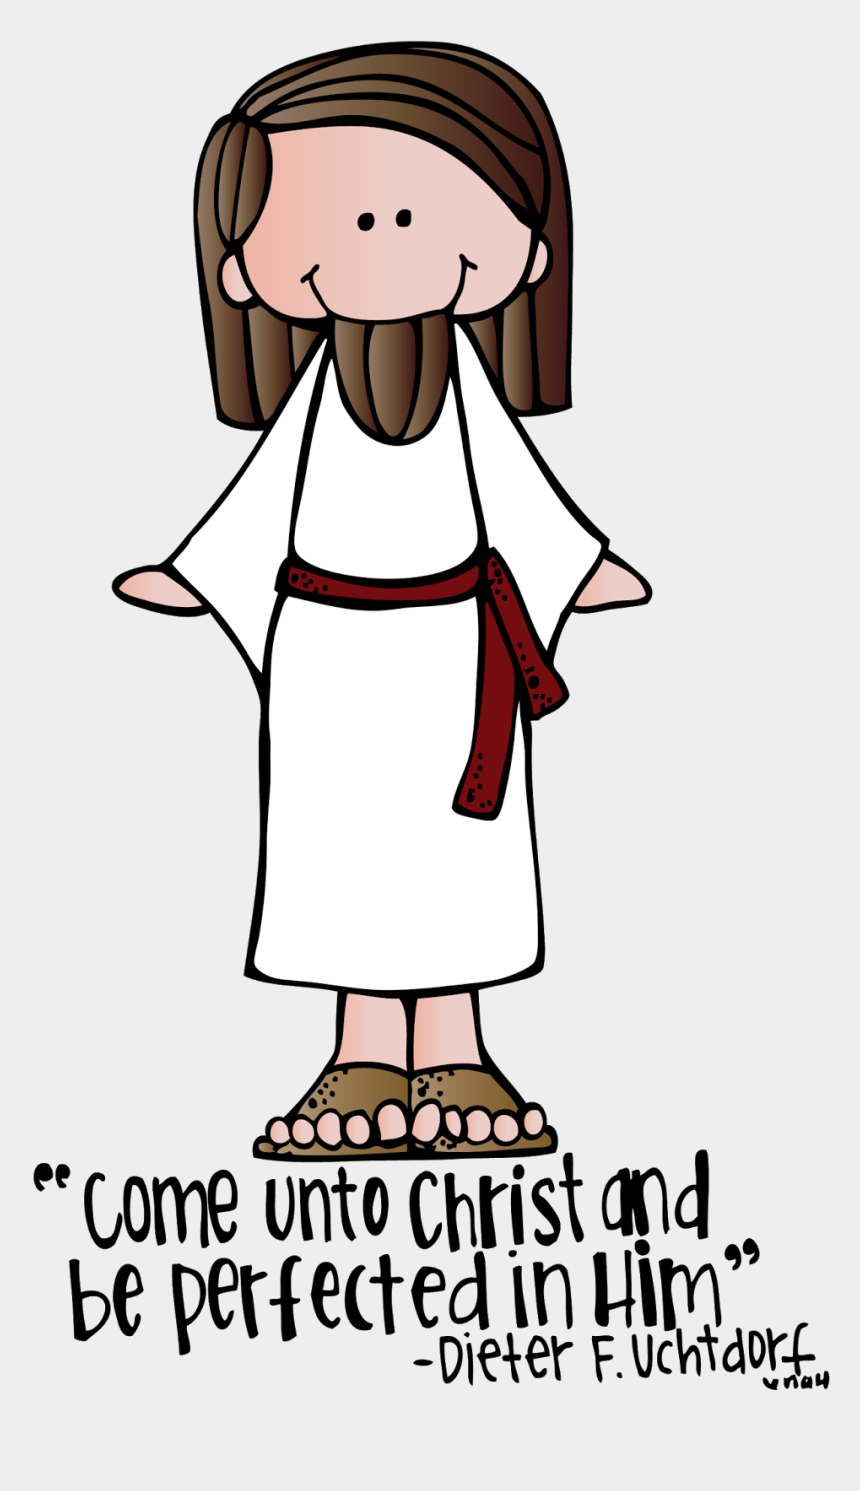 10 commandments clipart, Cartoons - Melonheadz Lds Illustrating - The Church Of Jesus Christ Of Latter-day Saints